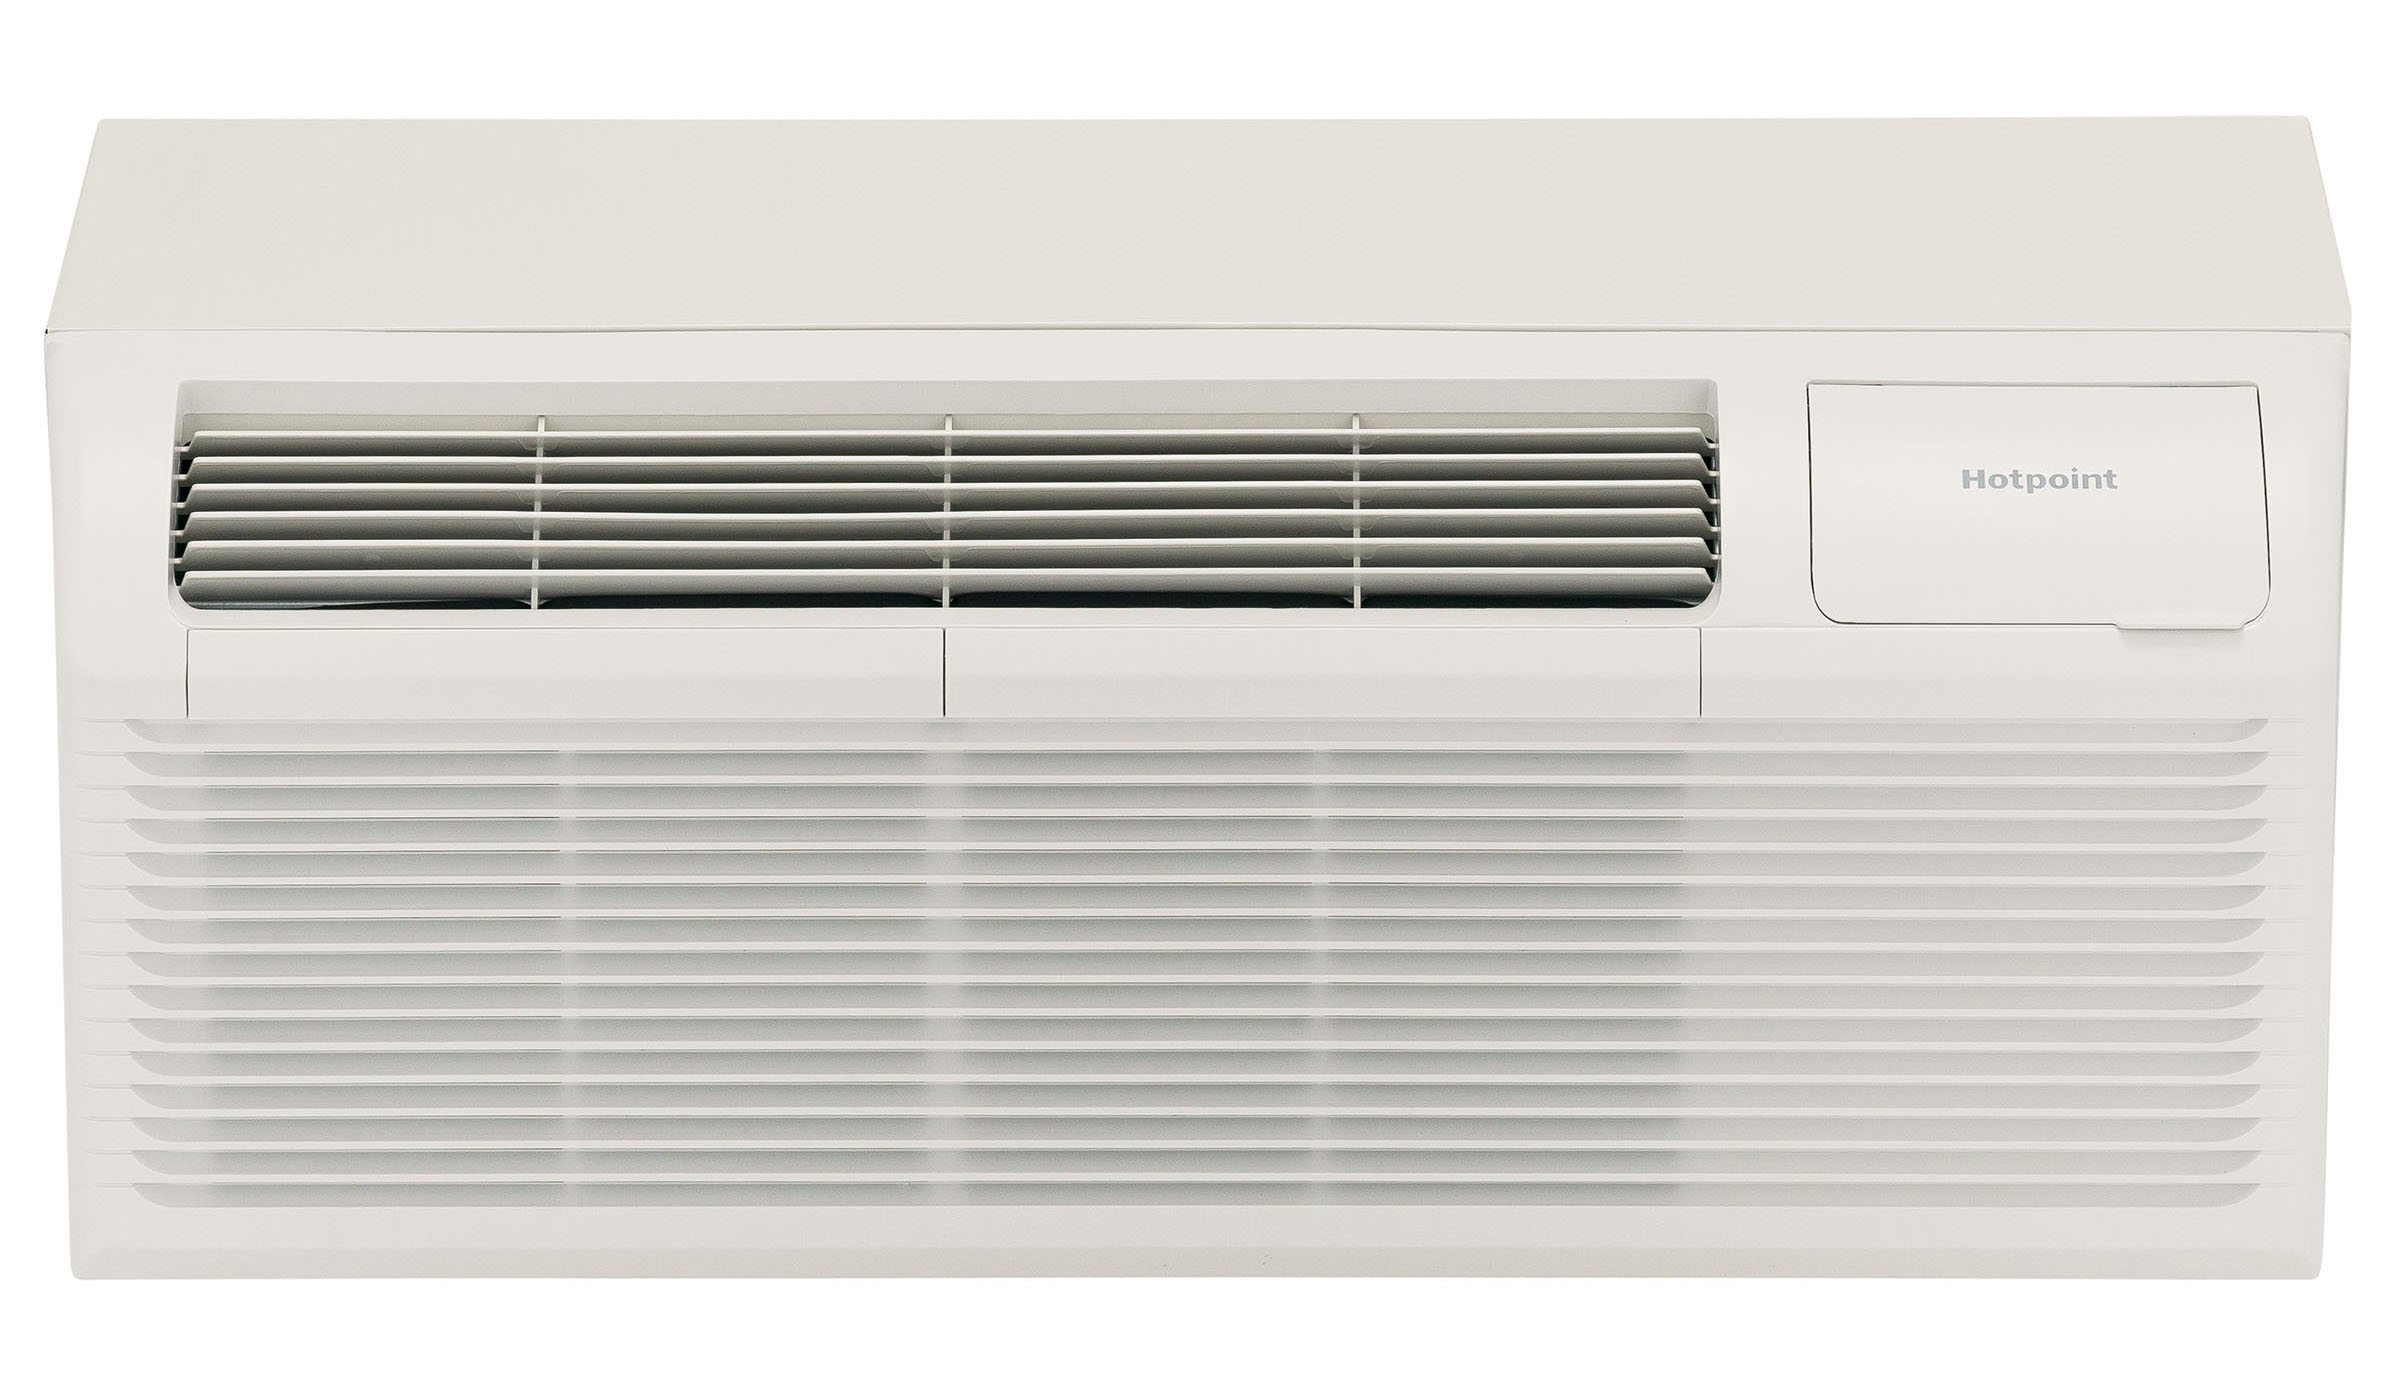 Hotpoint AH11E09D2B 9000 BTU PTAC Air Conditioner with Electric Heat - 15 Amp - 208/230 Volt